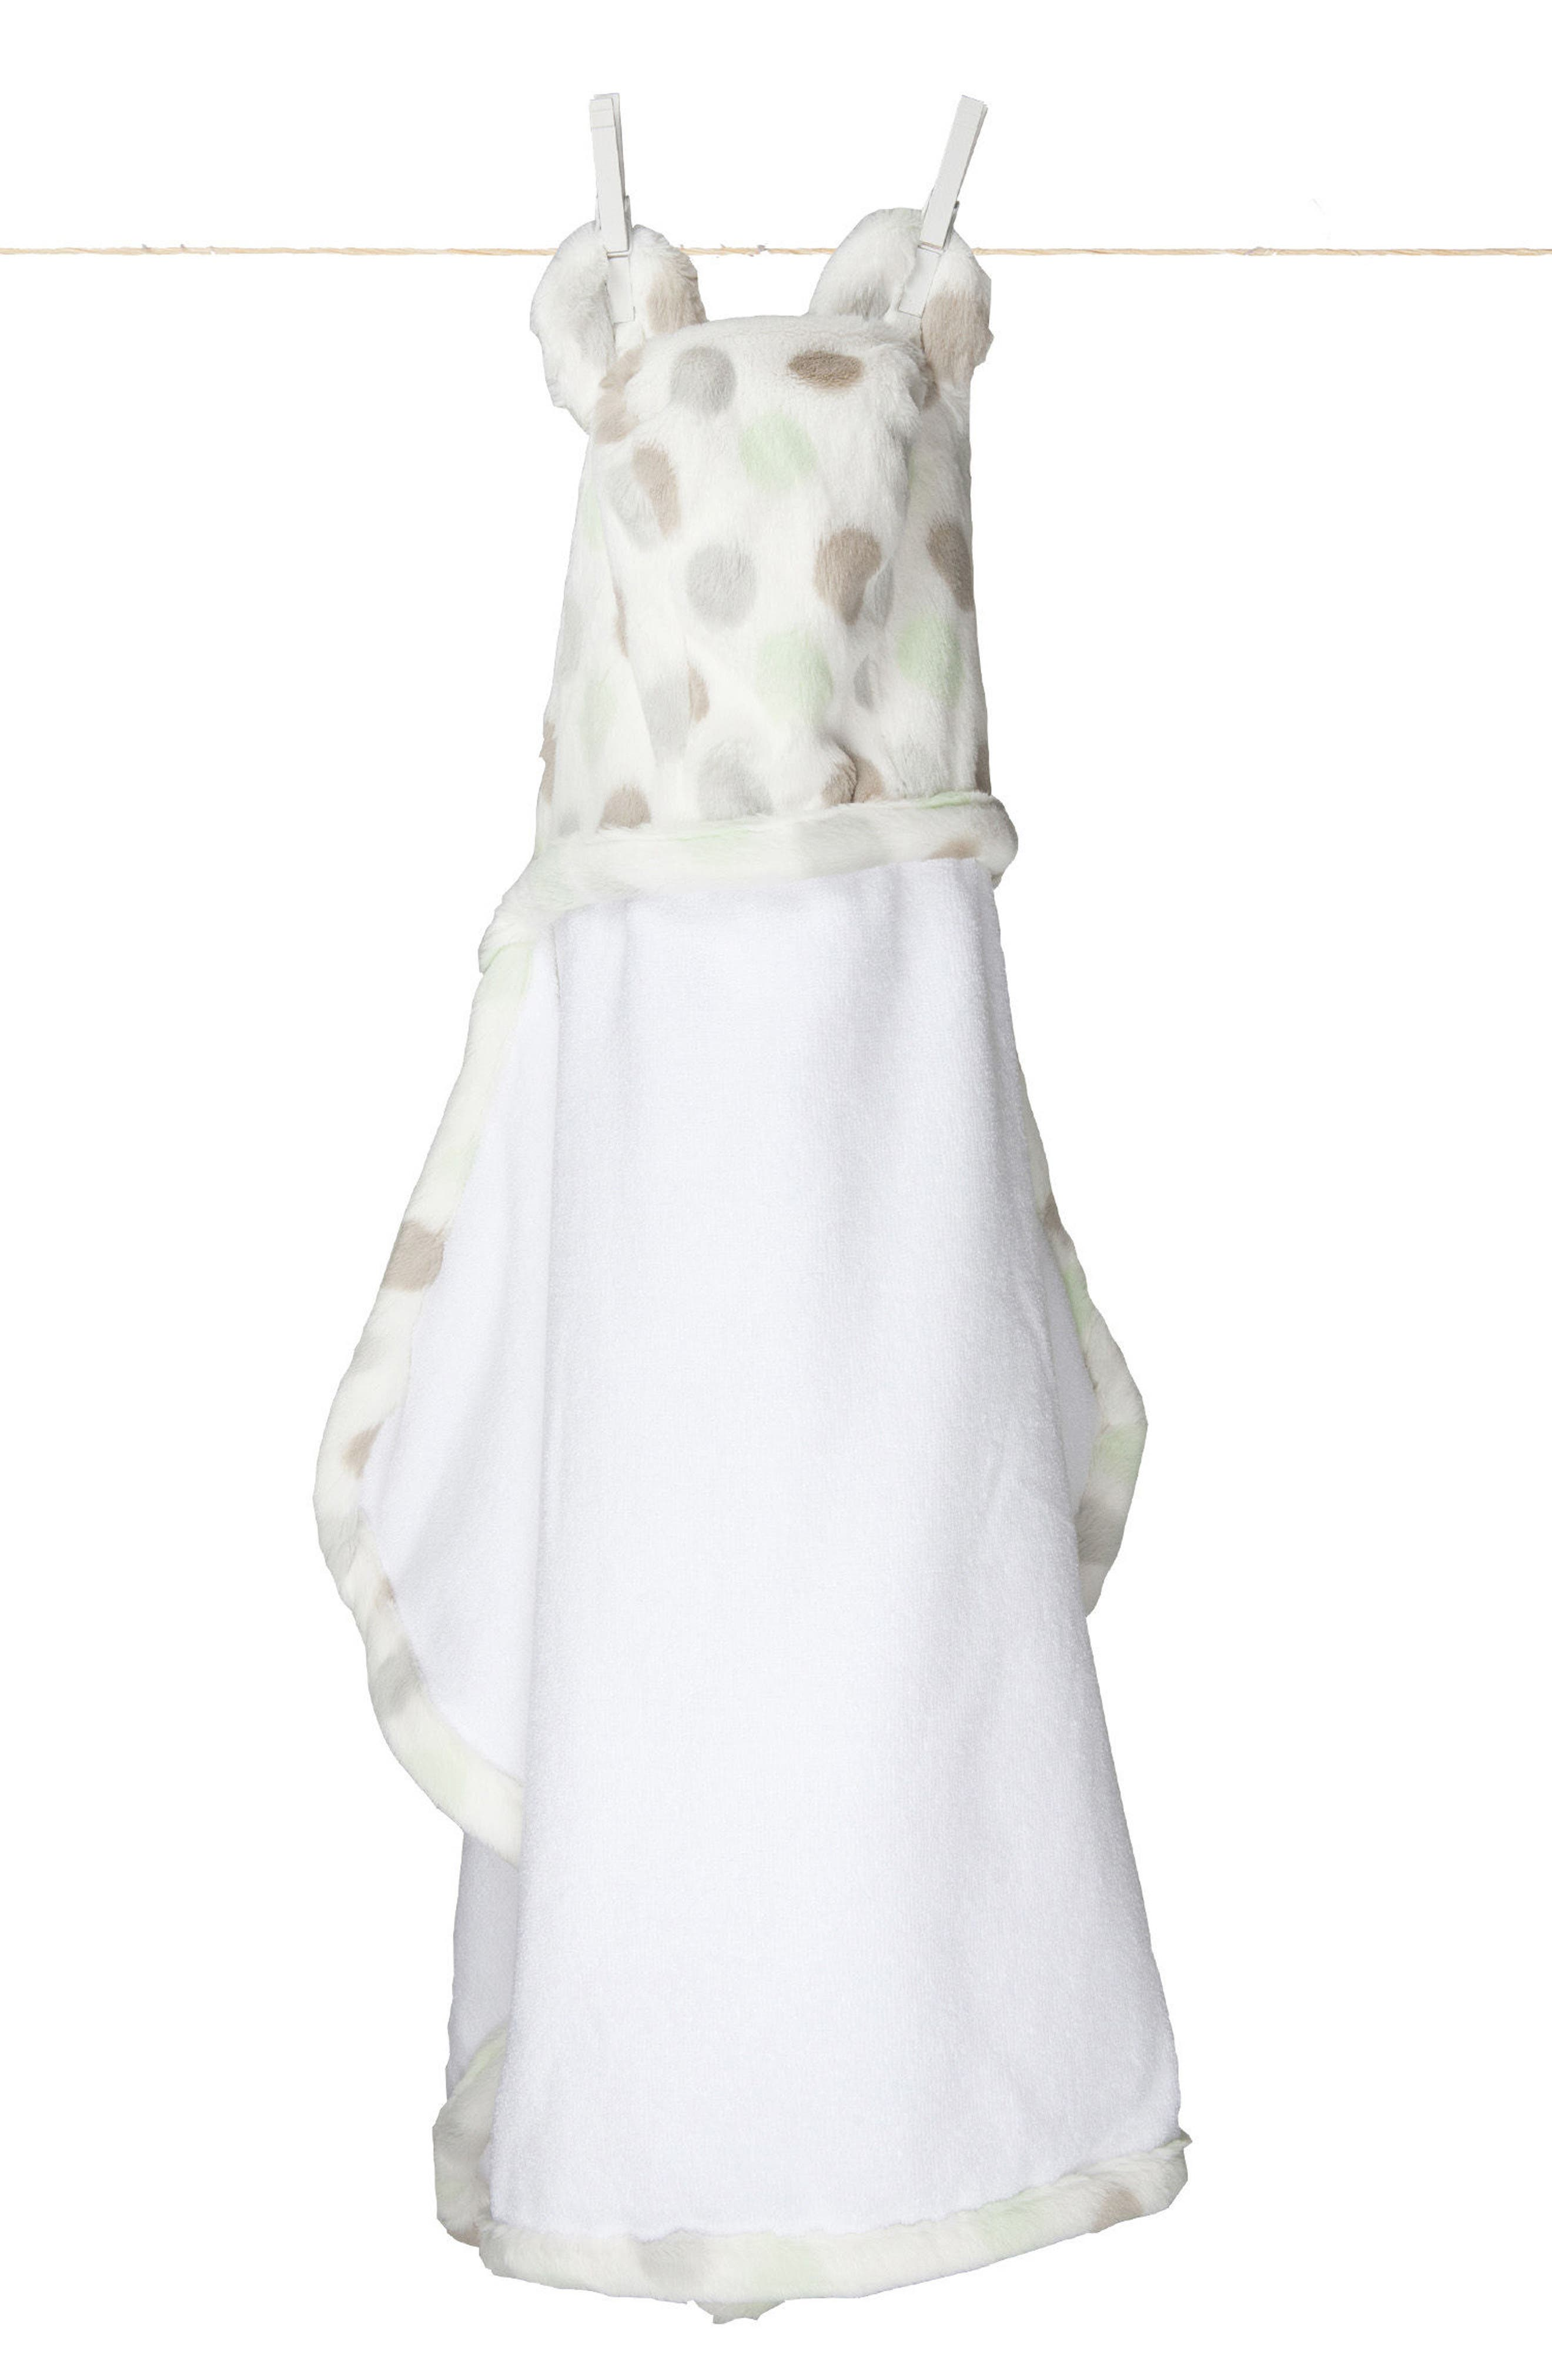 'Luxe Dot' Hooded Towel,                         Main,                         color, CELADON